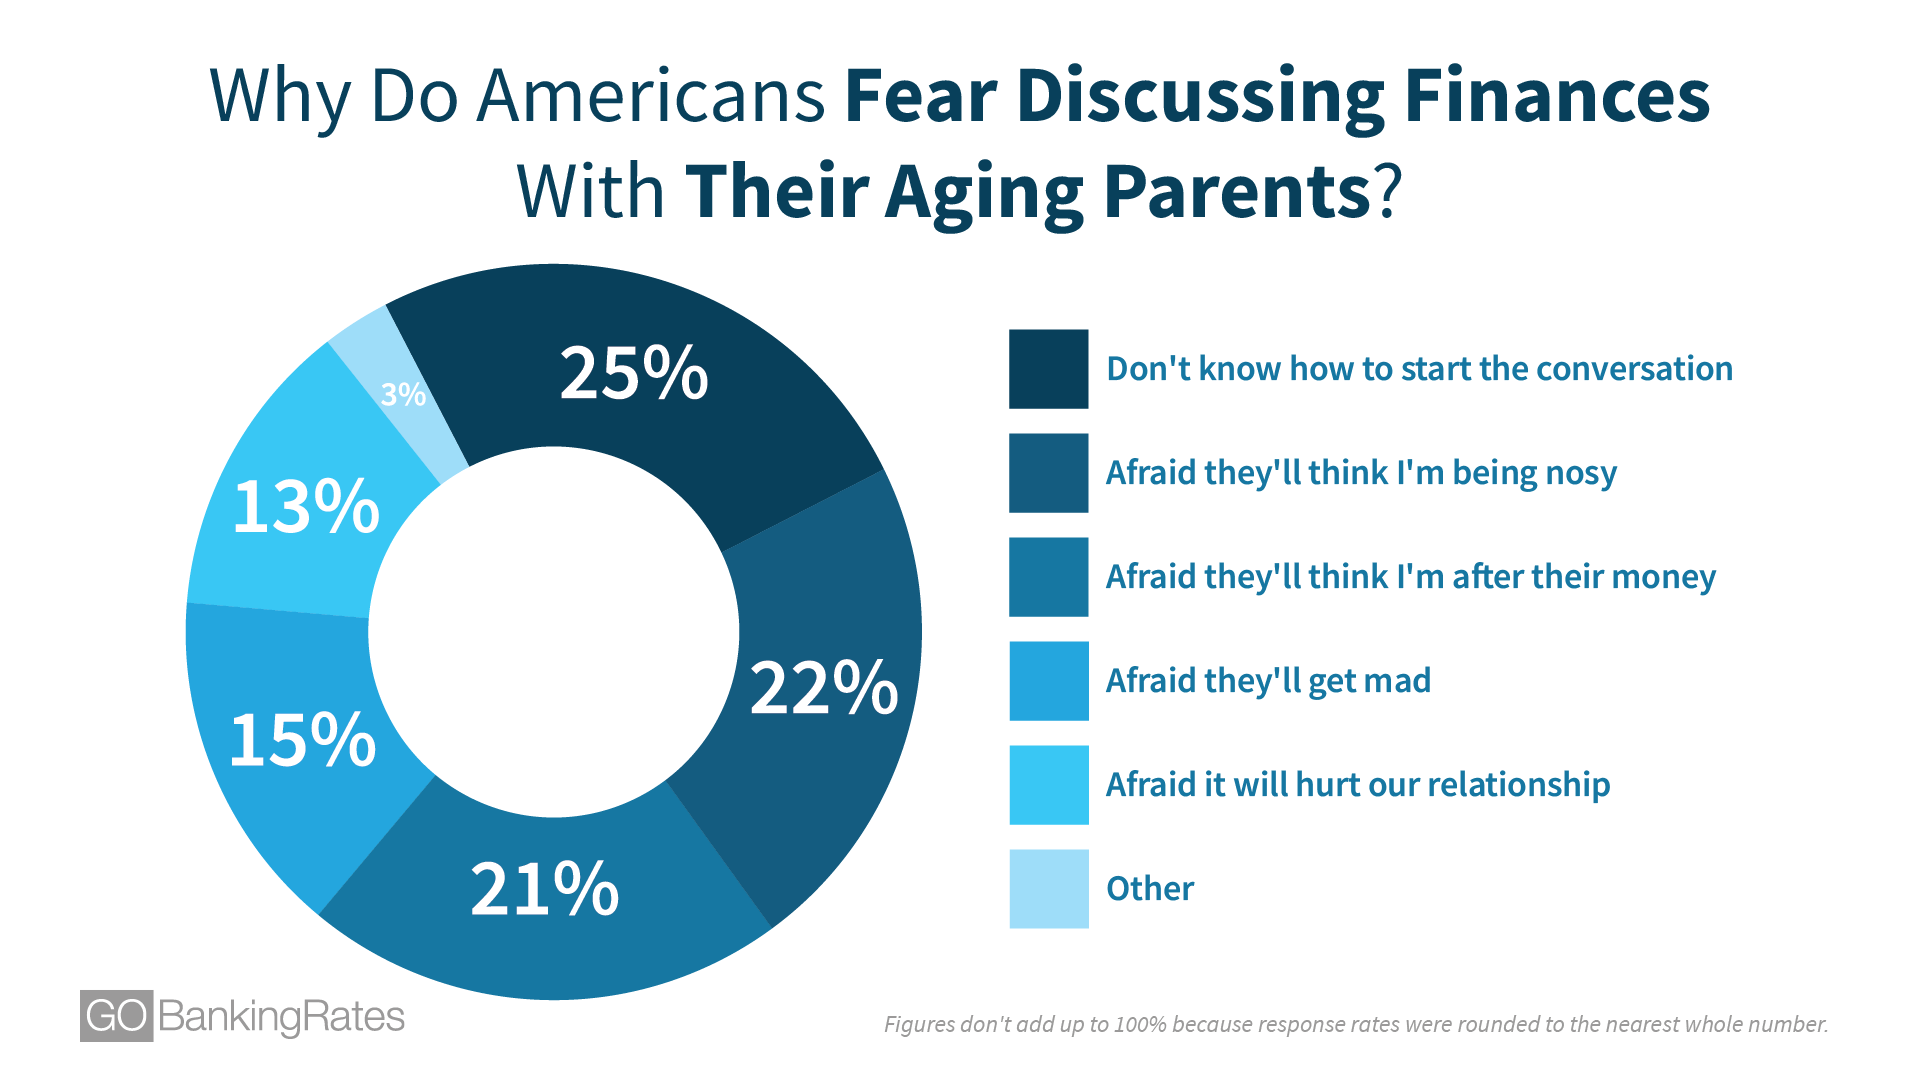 Why Do Americans Fear Discussing Finances With Their Aging Parents?